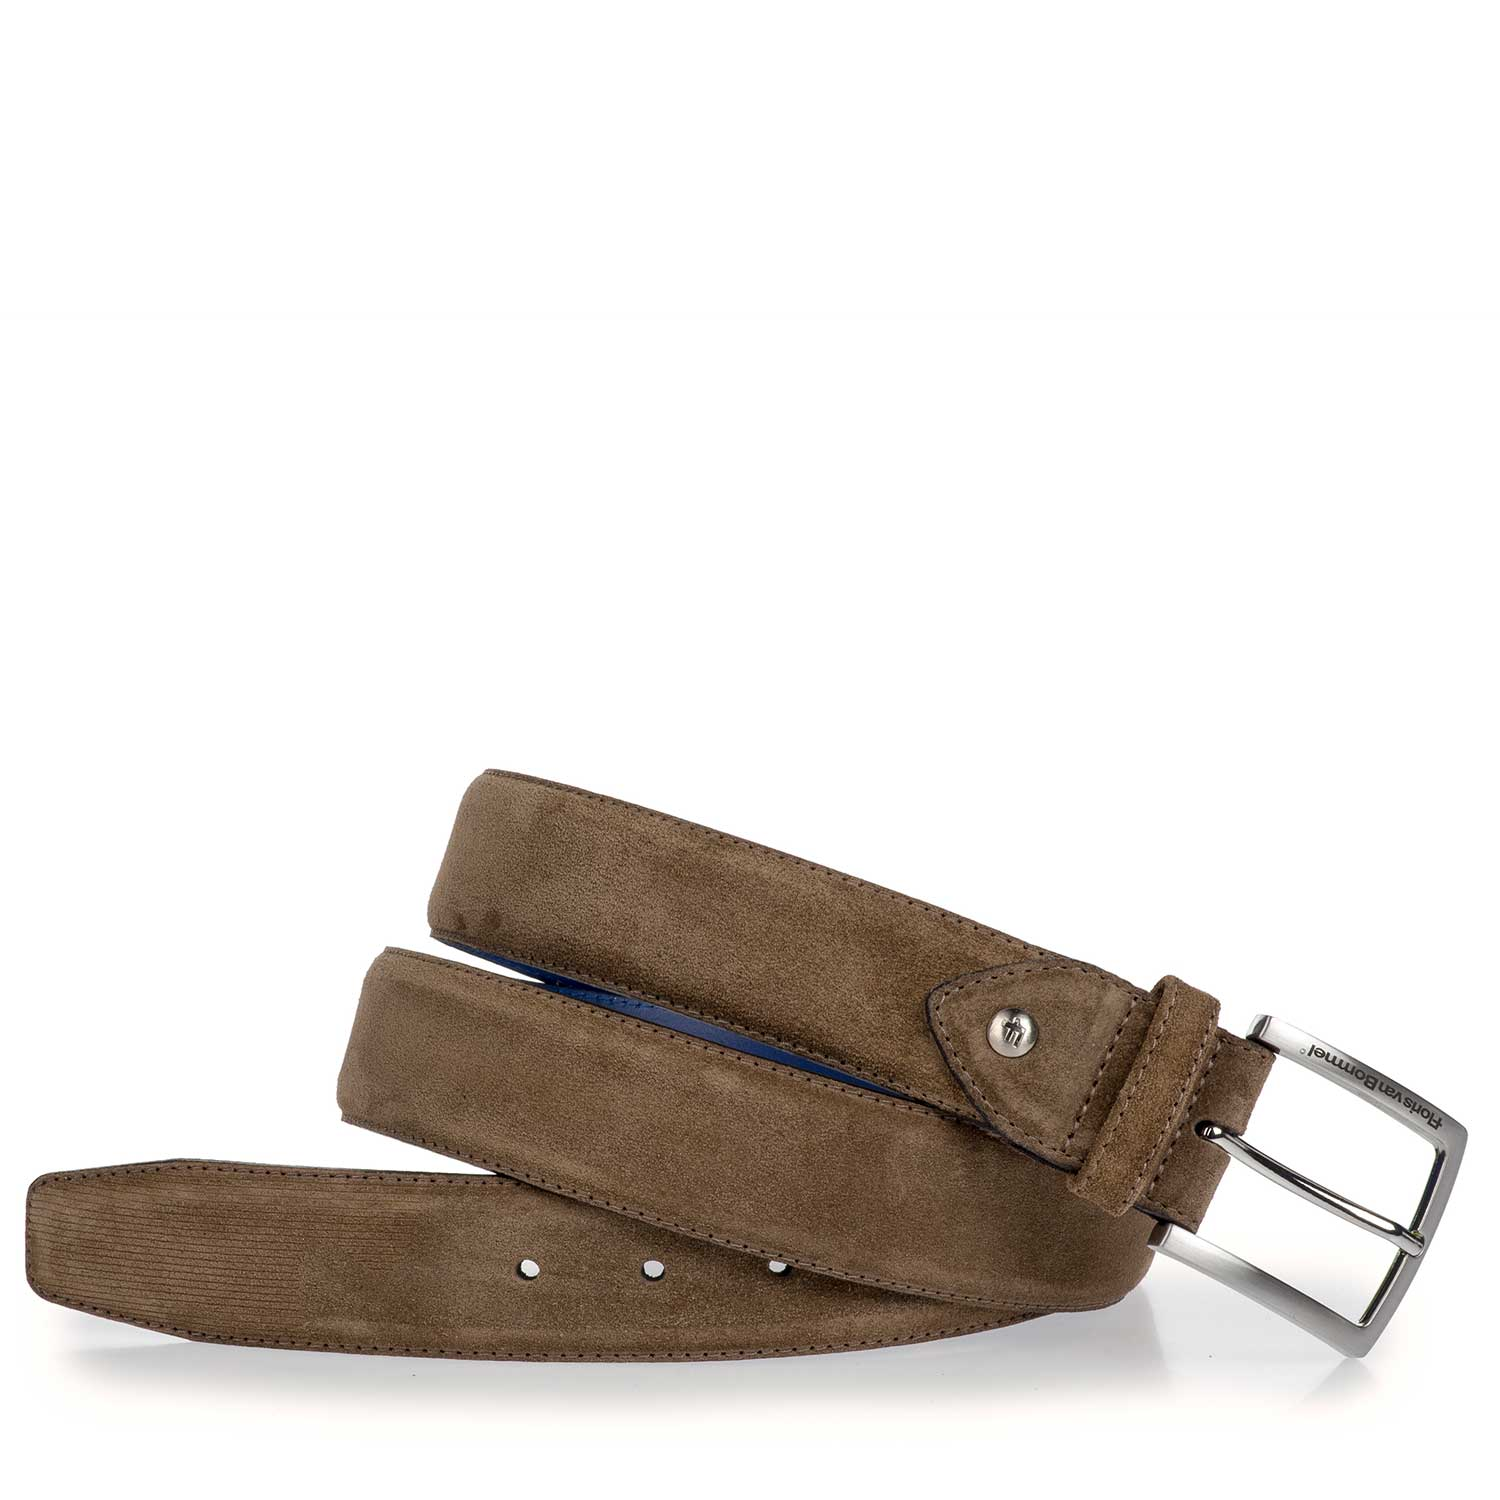 75186/04 - Taupe-coloured suede leather belt with laser print